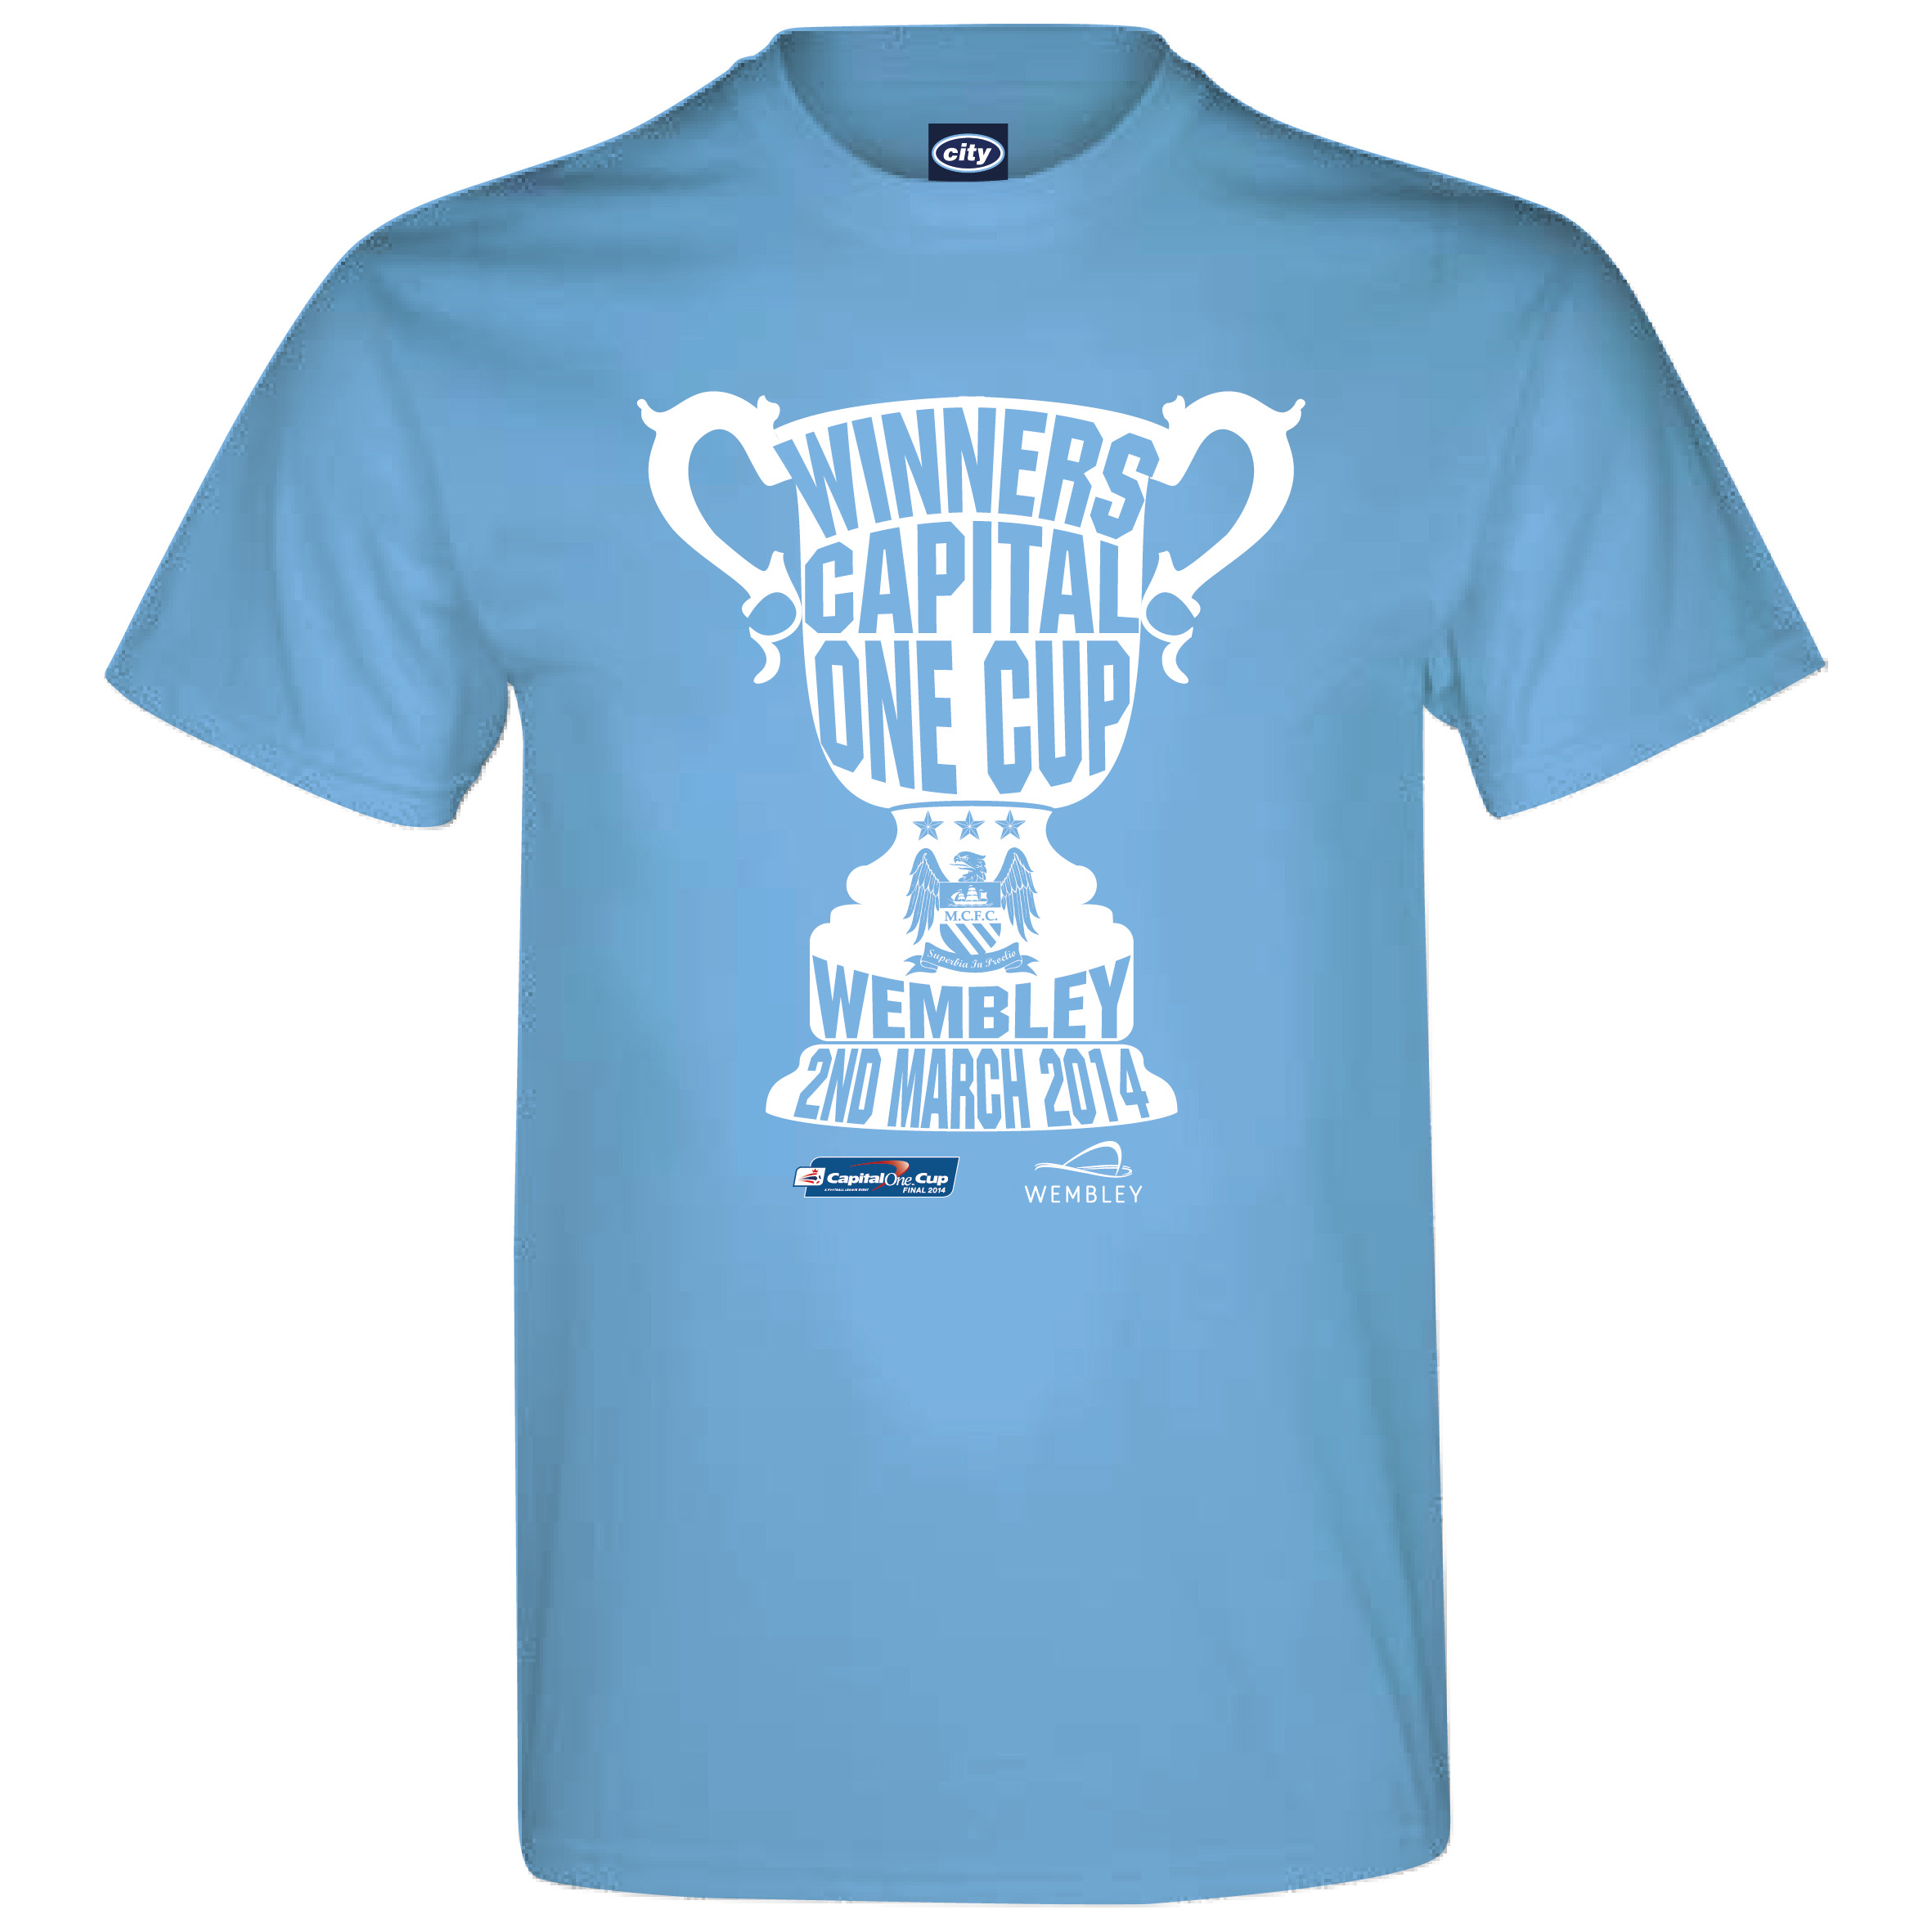 Manchester City Capital One Cup Winners T-Shirt - -Sky Blue - Mens